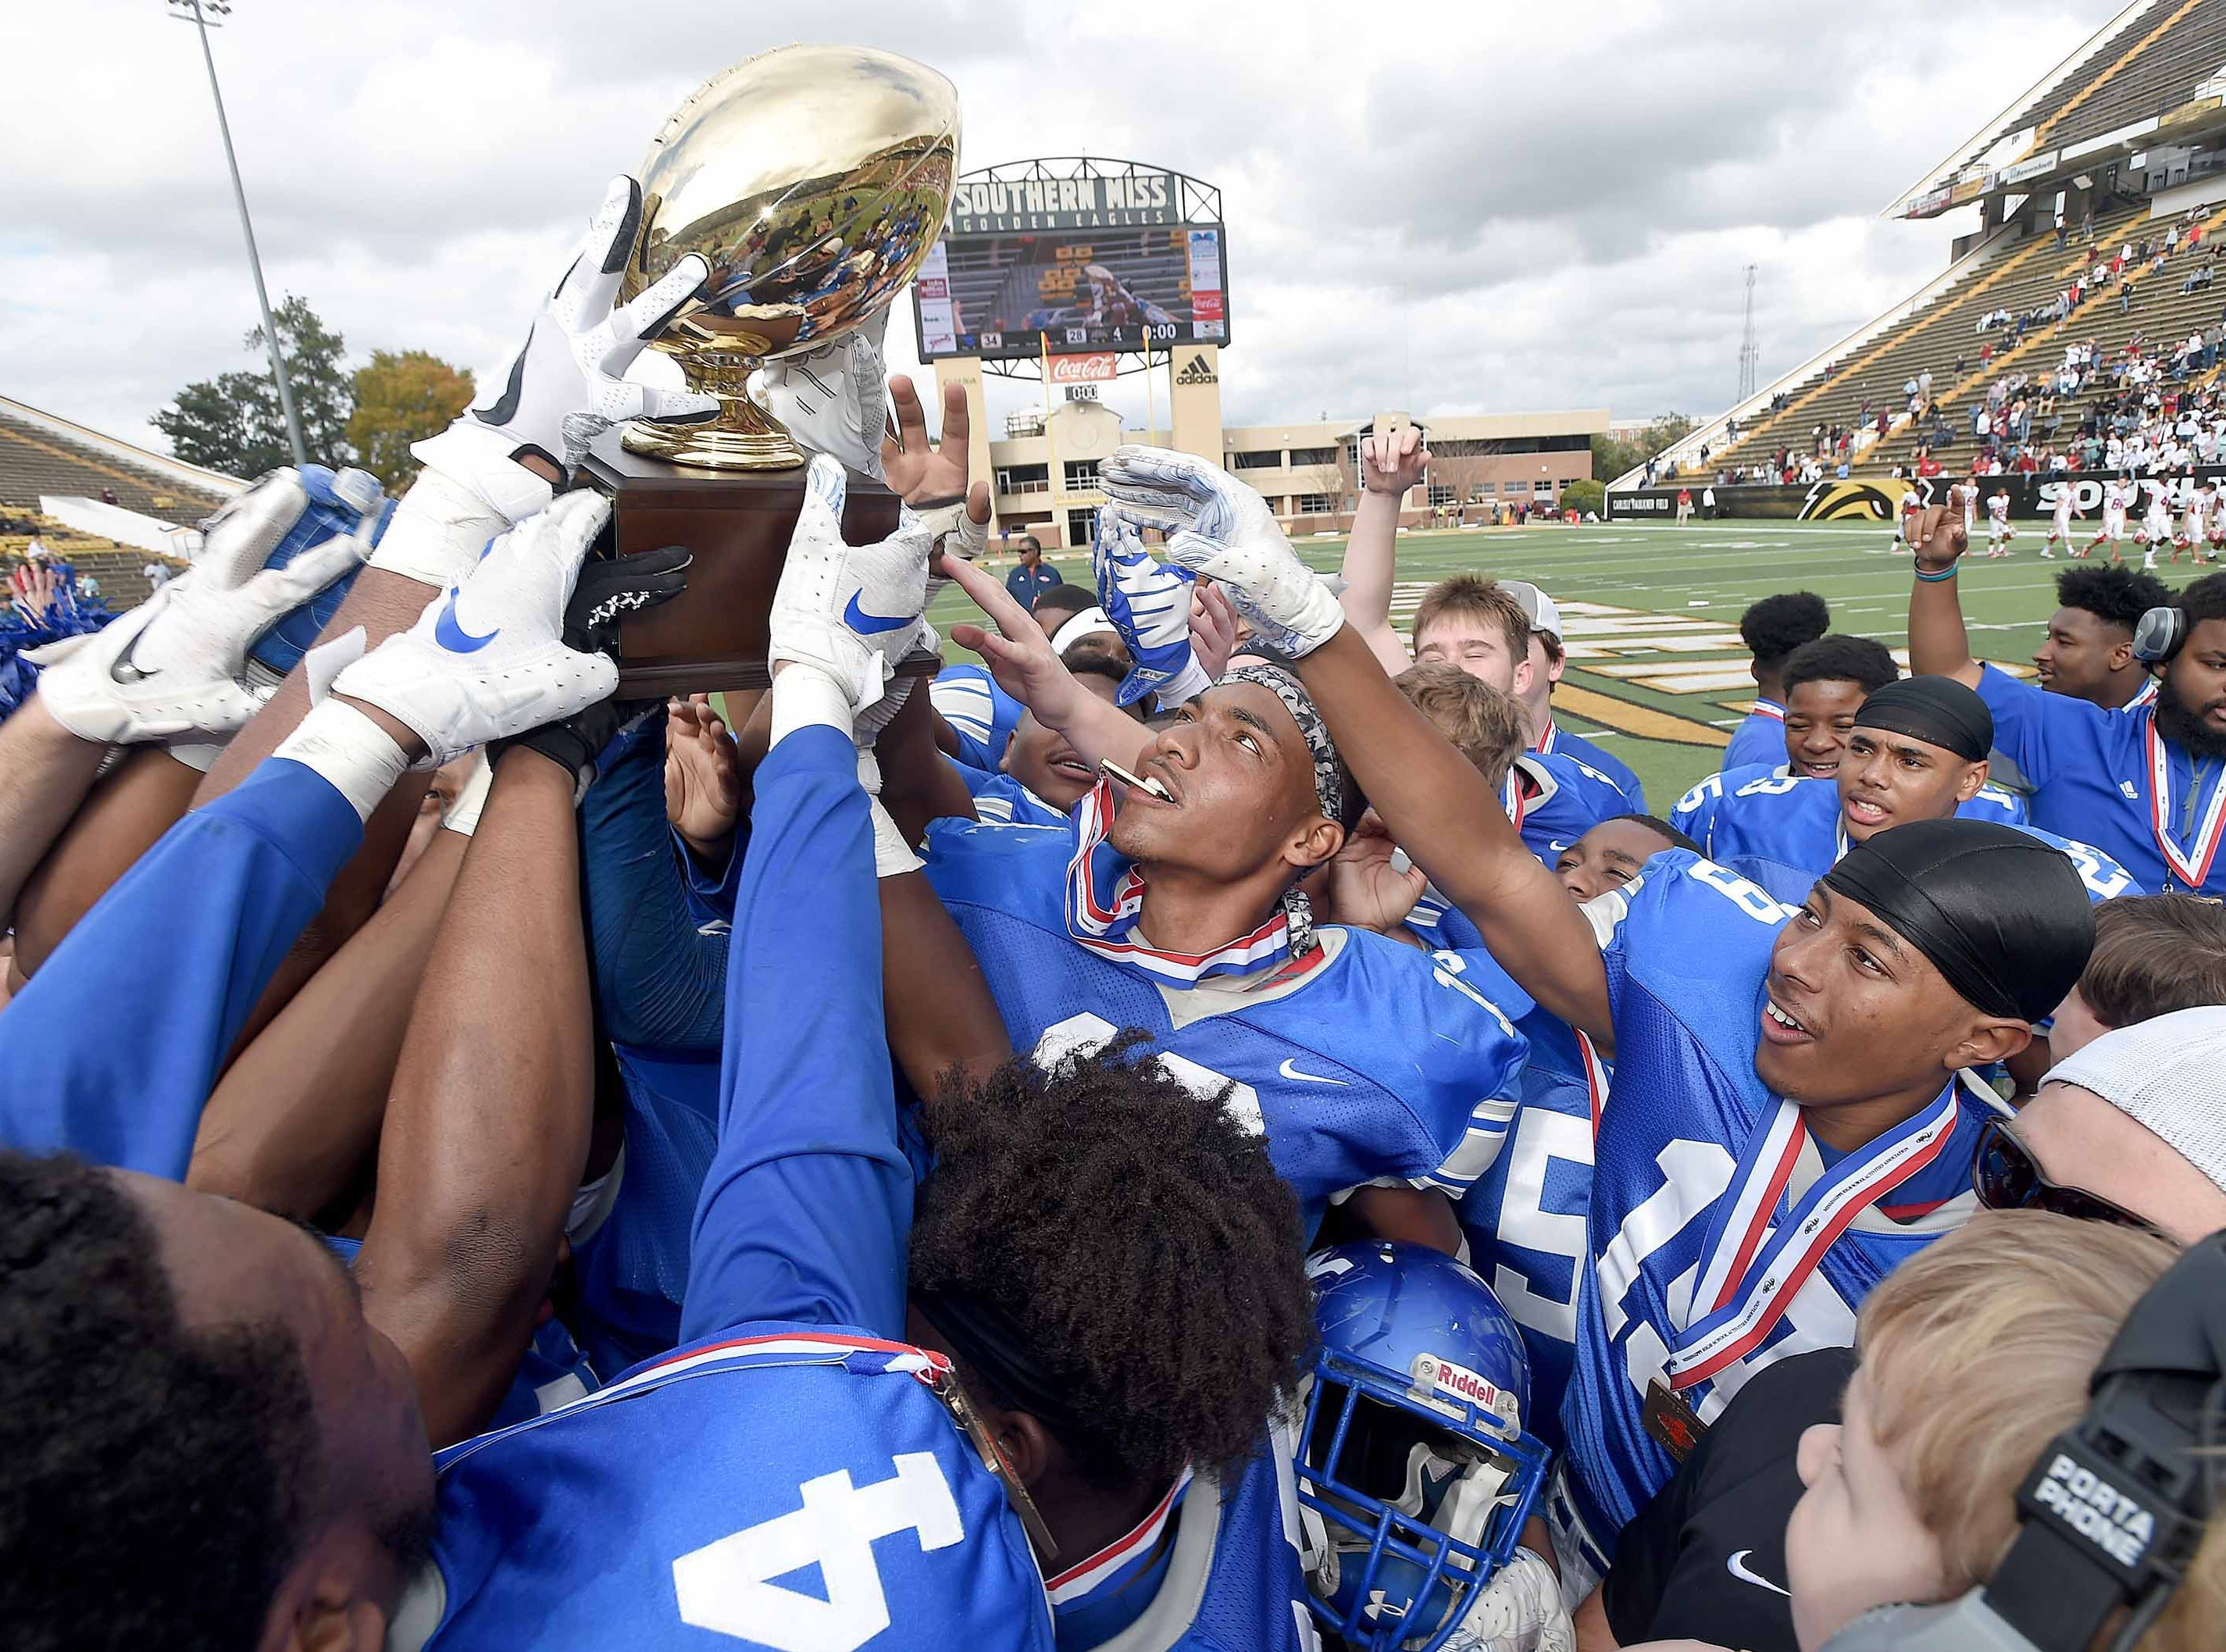 The Water Valley Blue Devils celebrate with the trophy on Friday, November 20, 2018, in the MHSAA BlueCross BlueShield Gridiron Classic High School Football Championships in M.M. Roberts Stadium on the University of Southern Mississippi campus in Hattiesburg, Miss.